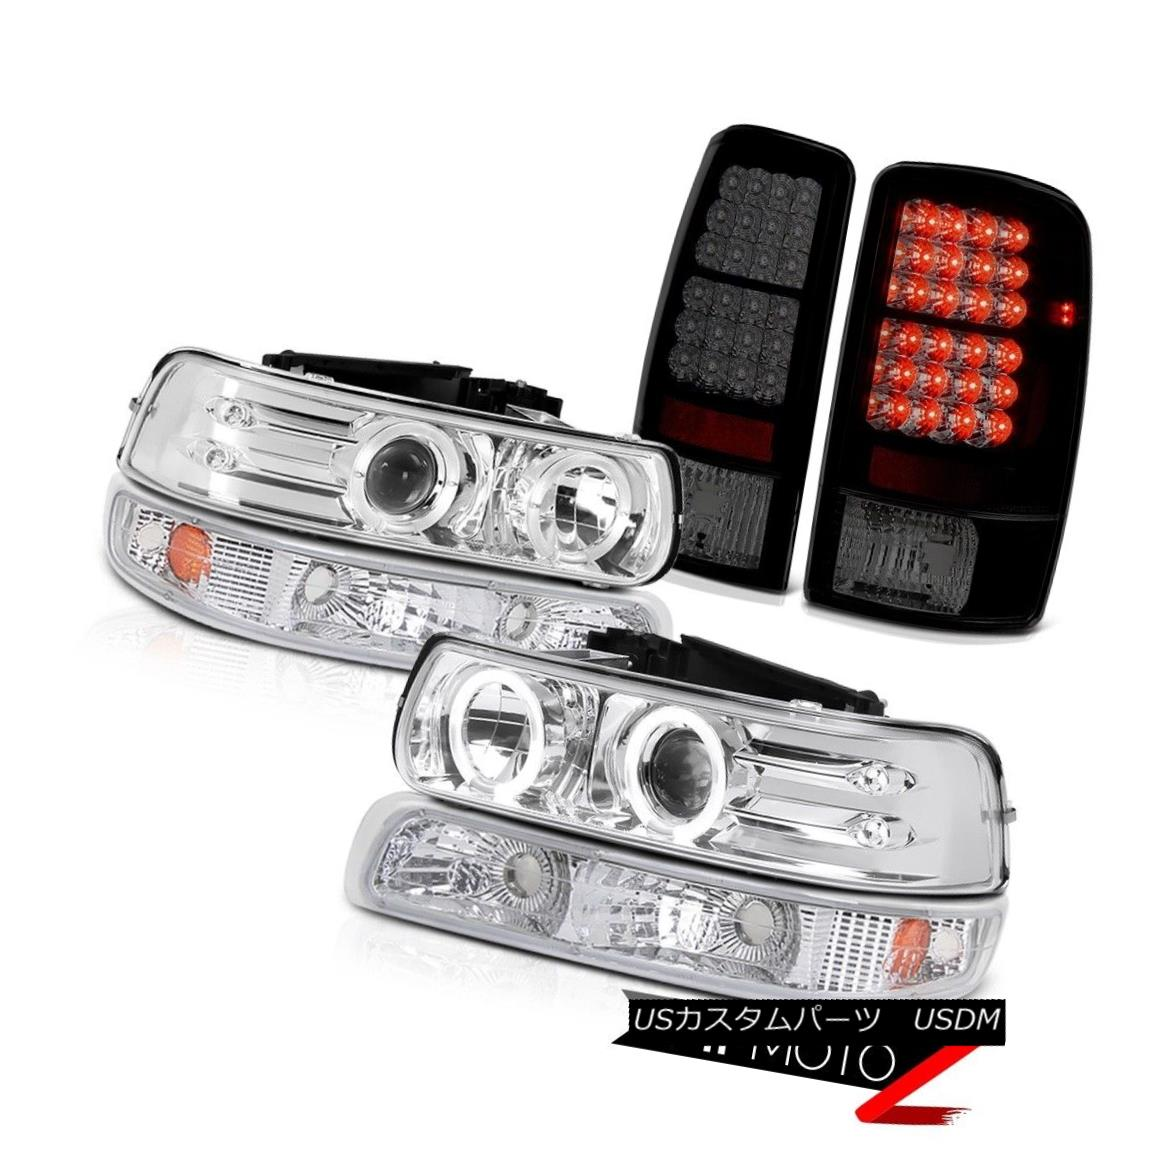 ヘッドライト Halo LED Headlamps Euro Bumper Philip SuperFlux Taillights 00-06 Chevy Tahoe Halo LEDヘッドランプユーロバンパーフィリップSuperFluxテールライト00-06 Chevy Tahoe